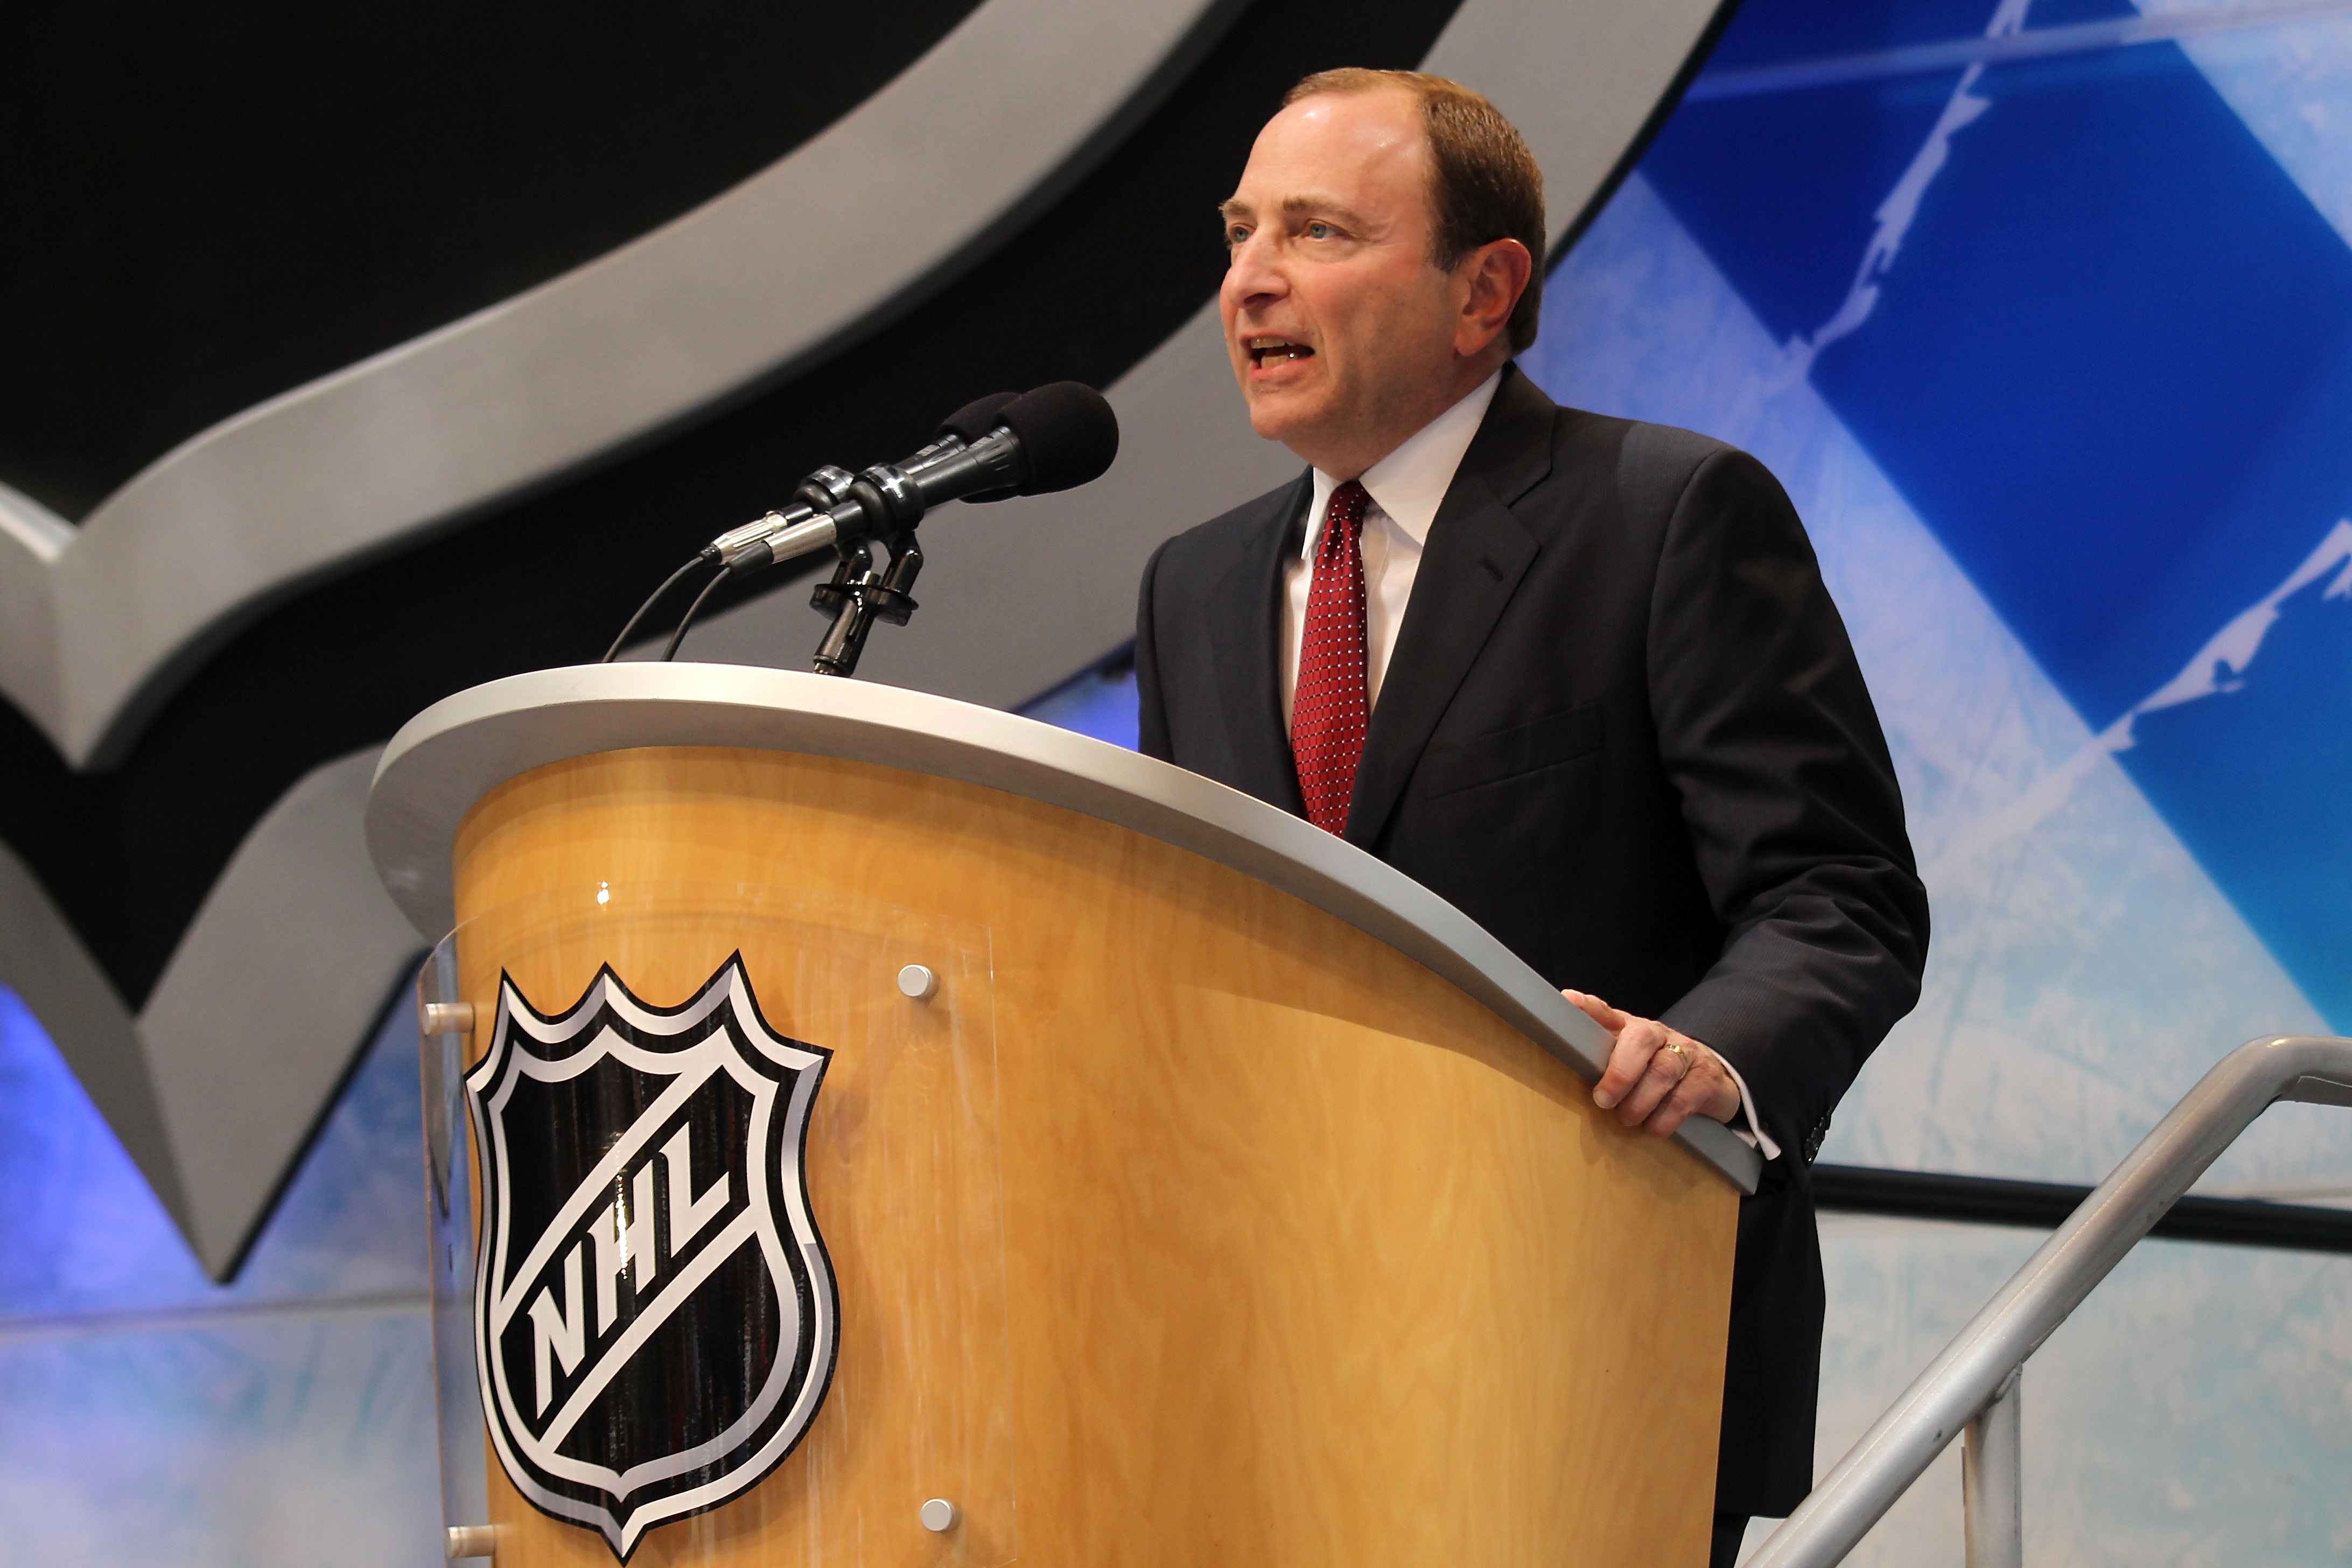 LOS ANGELES, CA - JUNE 25:  Gary Bettman, Commissioner of the National Hockey League, speaks to start the 2010 NHL Entry Draft at Staples Center on June 25, 2010 in Los Angeles, California.  (Photo by Bruce Bennett/Getty Images)